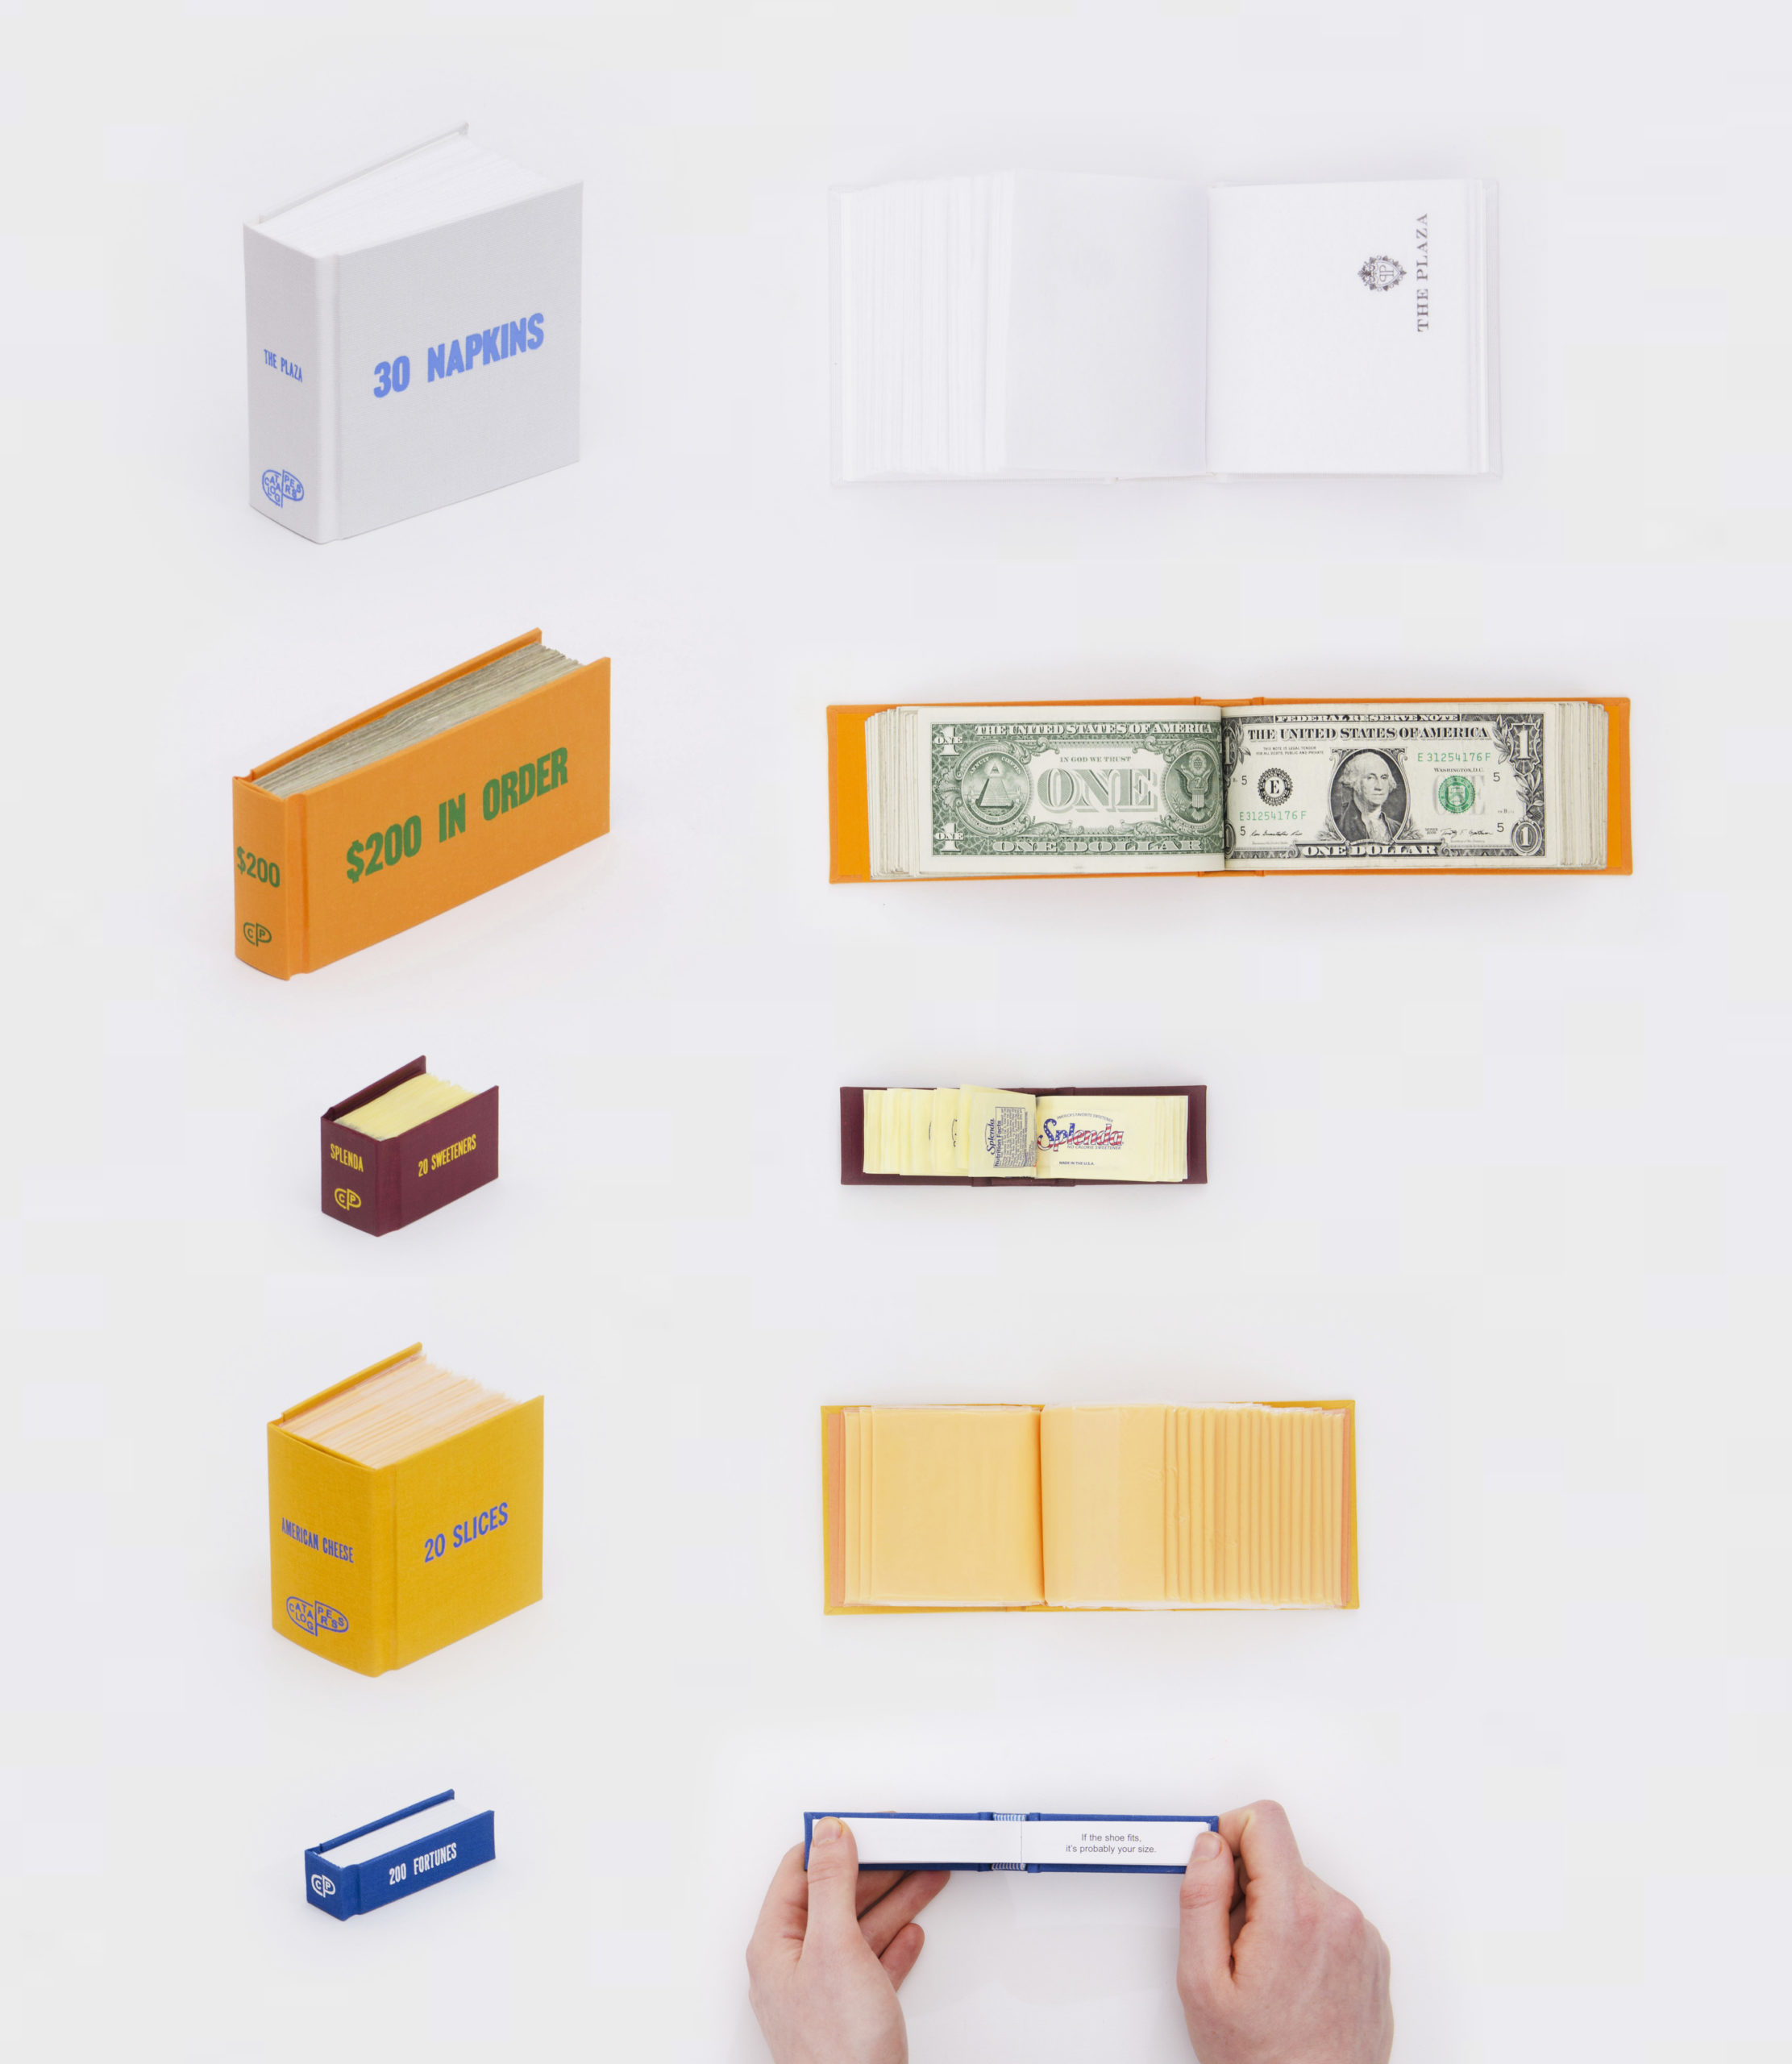 book of napkins, dolar bills, sweetener packets, american chese slices, and fortune cookie fortunes